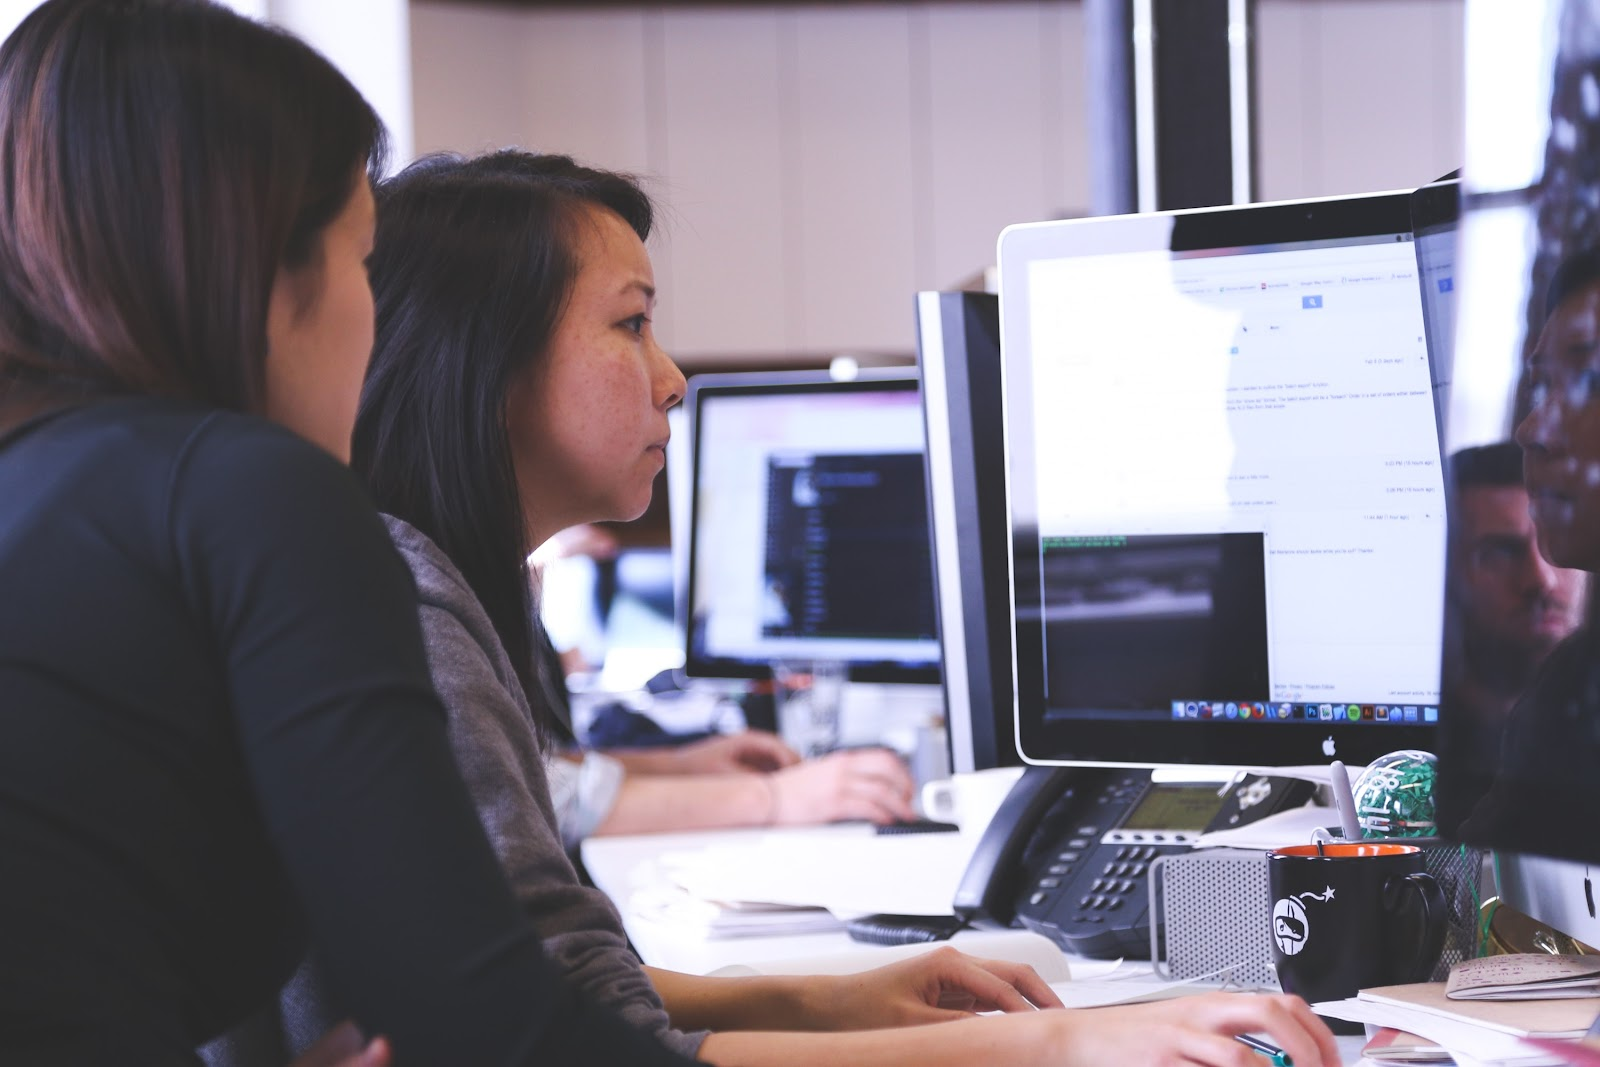 Two women working together in front of the computer